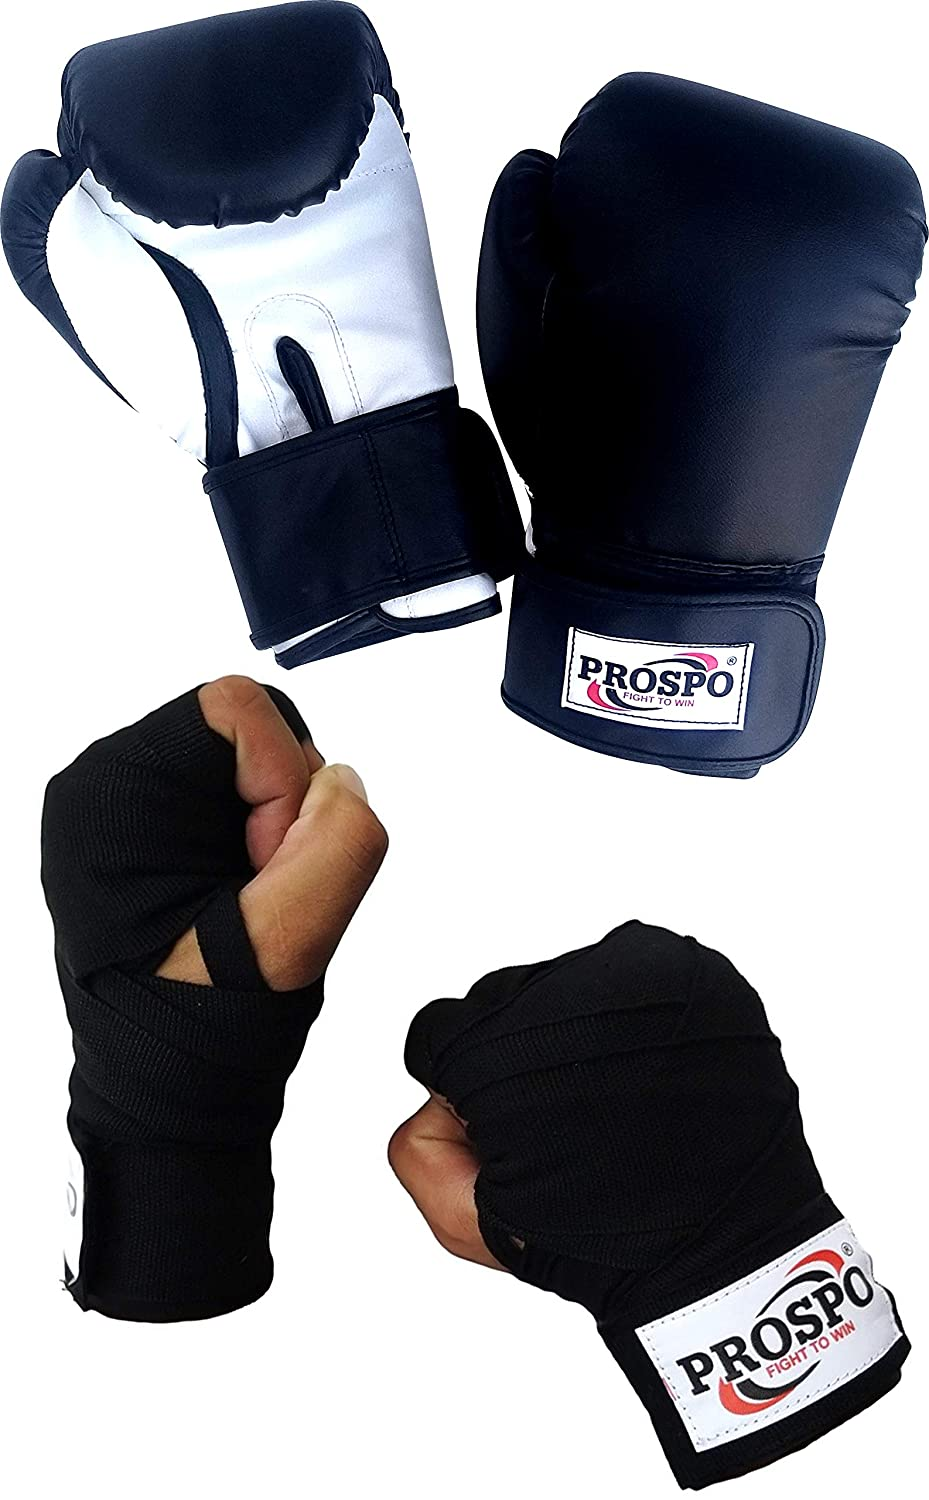 Prospo 12 oz Training and Fighting Boxing Gloves with Hand wrap Gloves   (syenthetic Leather)